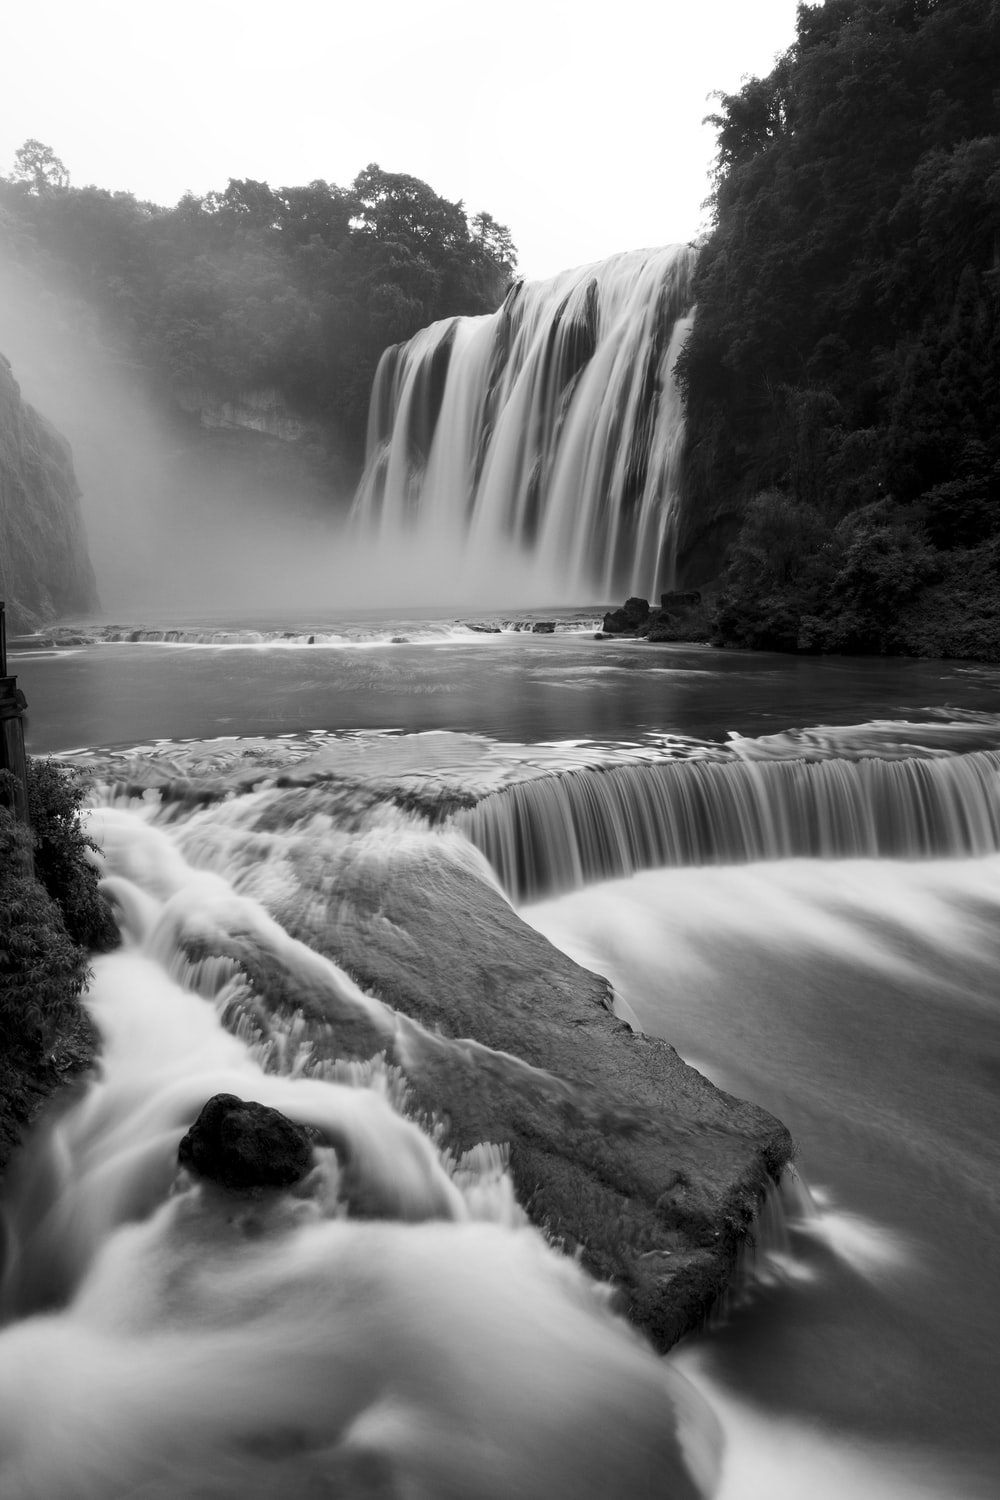 grayscale photography of waterfall